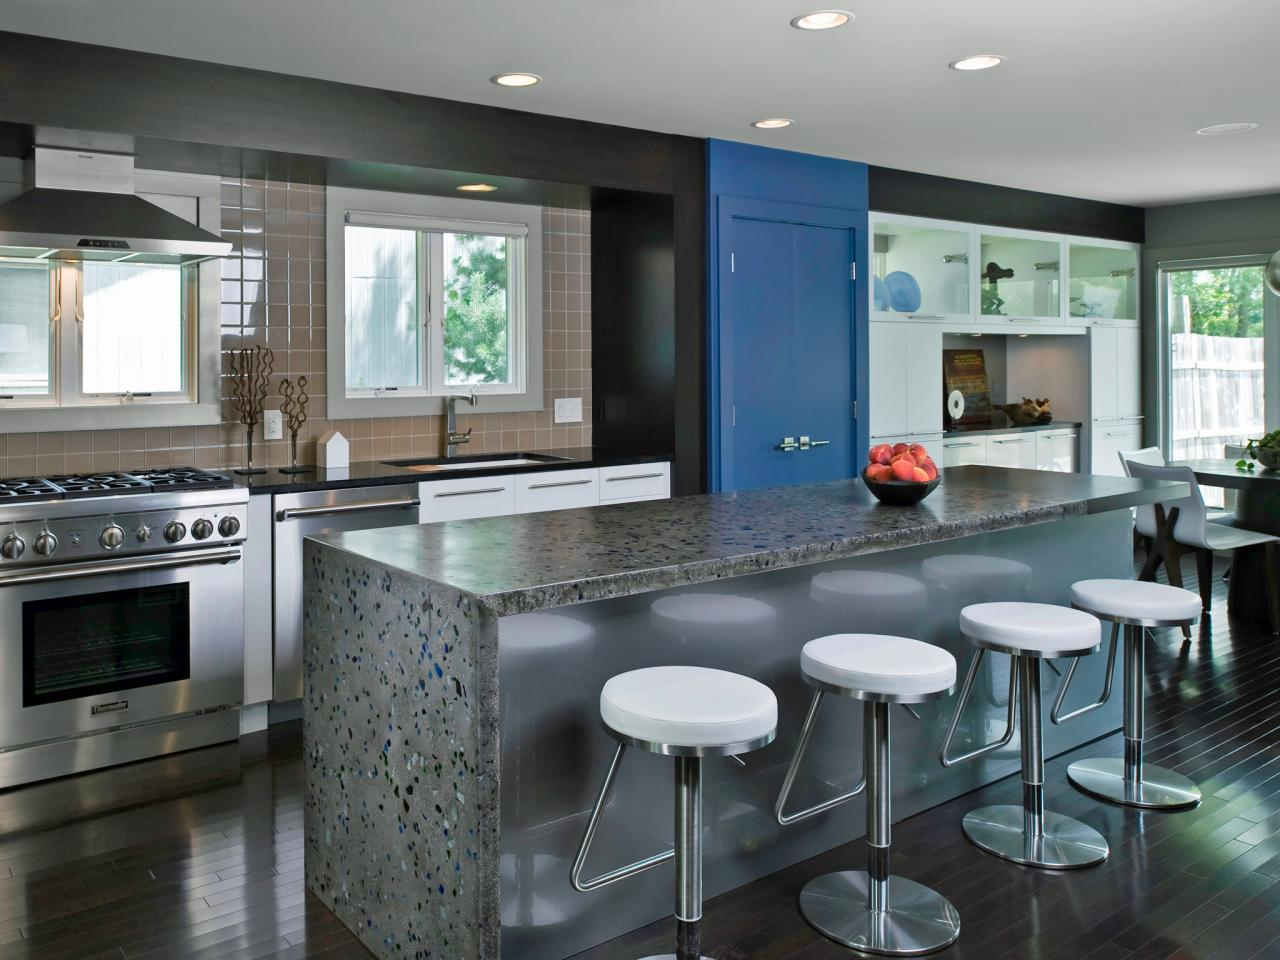 Awesome galley kitchen ideas a guide to kitchen layouts zlpkfvj